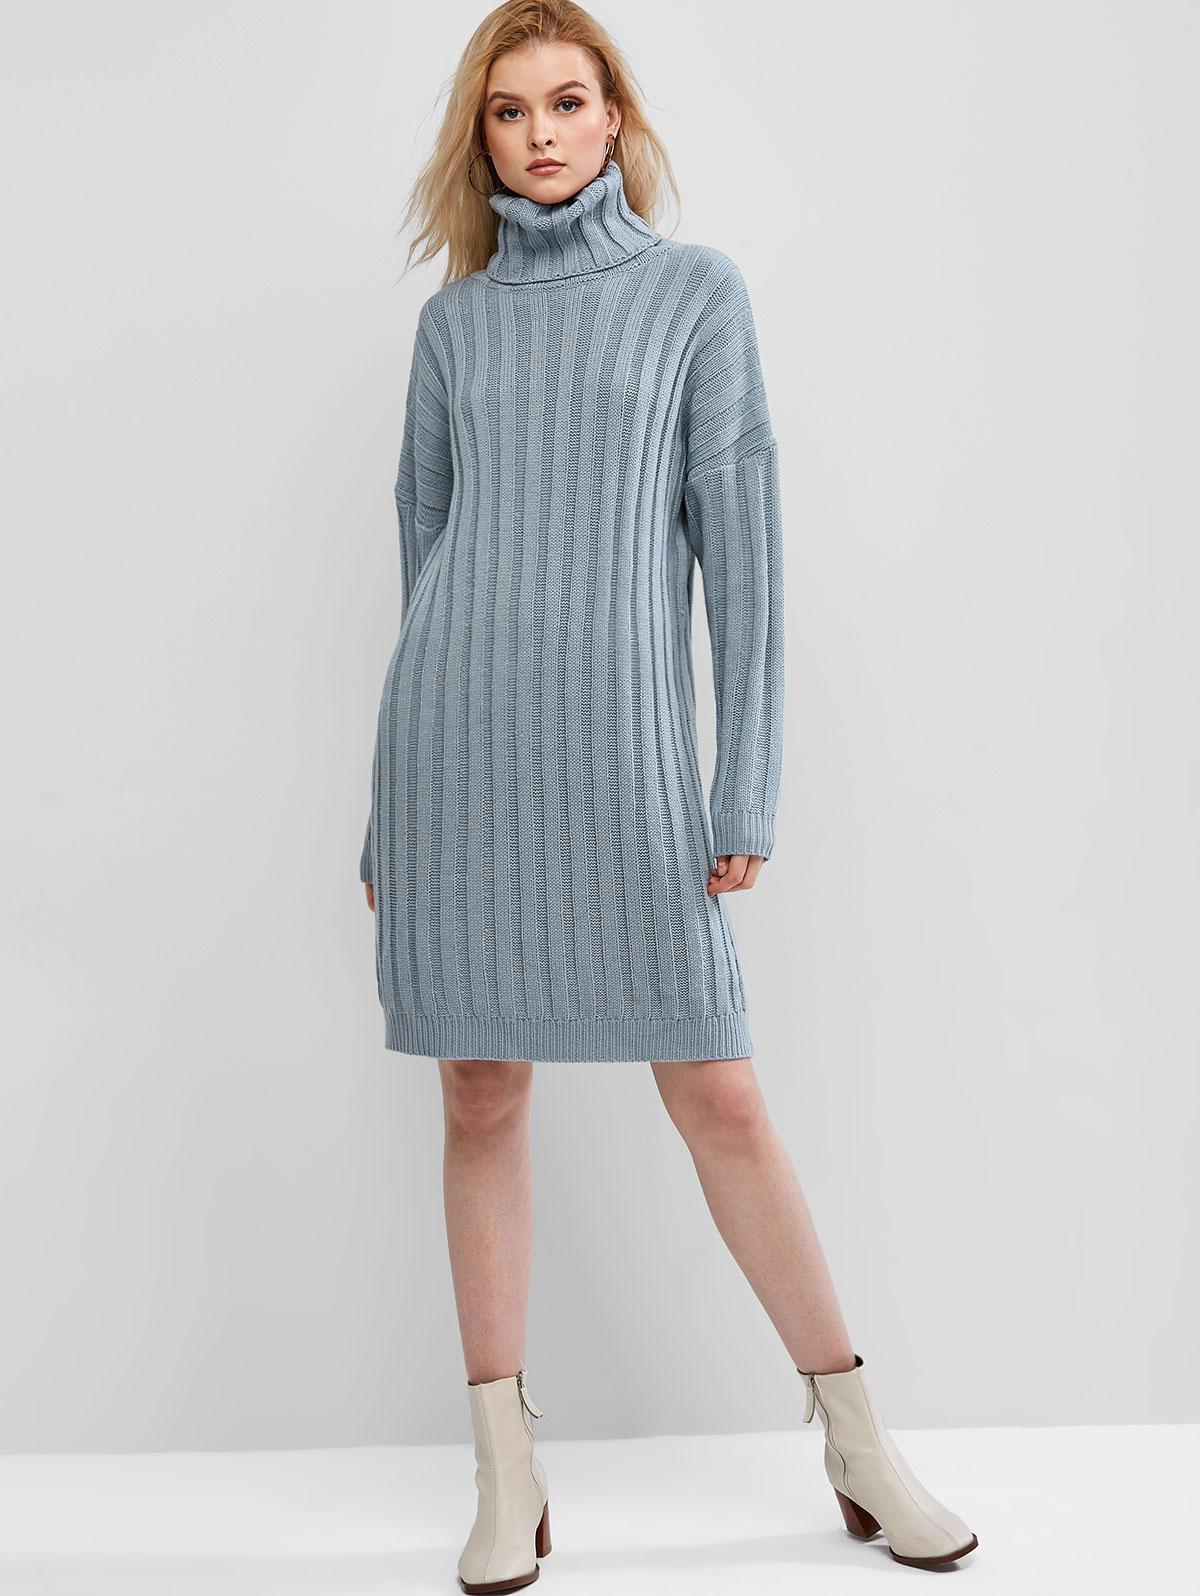 ZAFUL Ribbed Turtleneck Drop Shoulder Sweater Dress